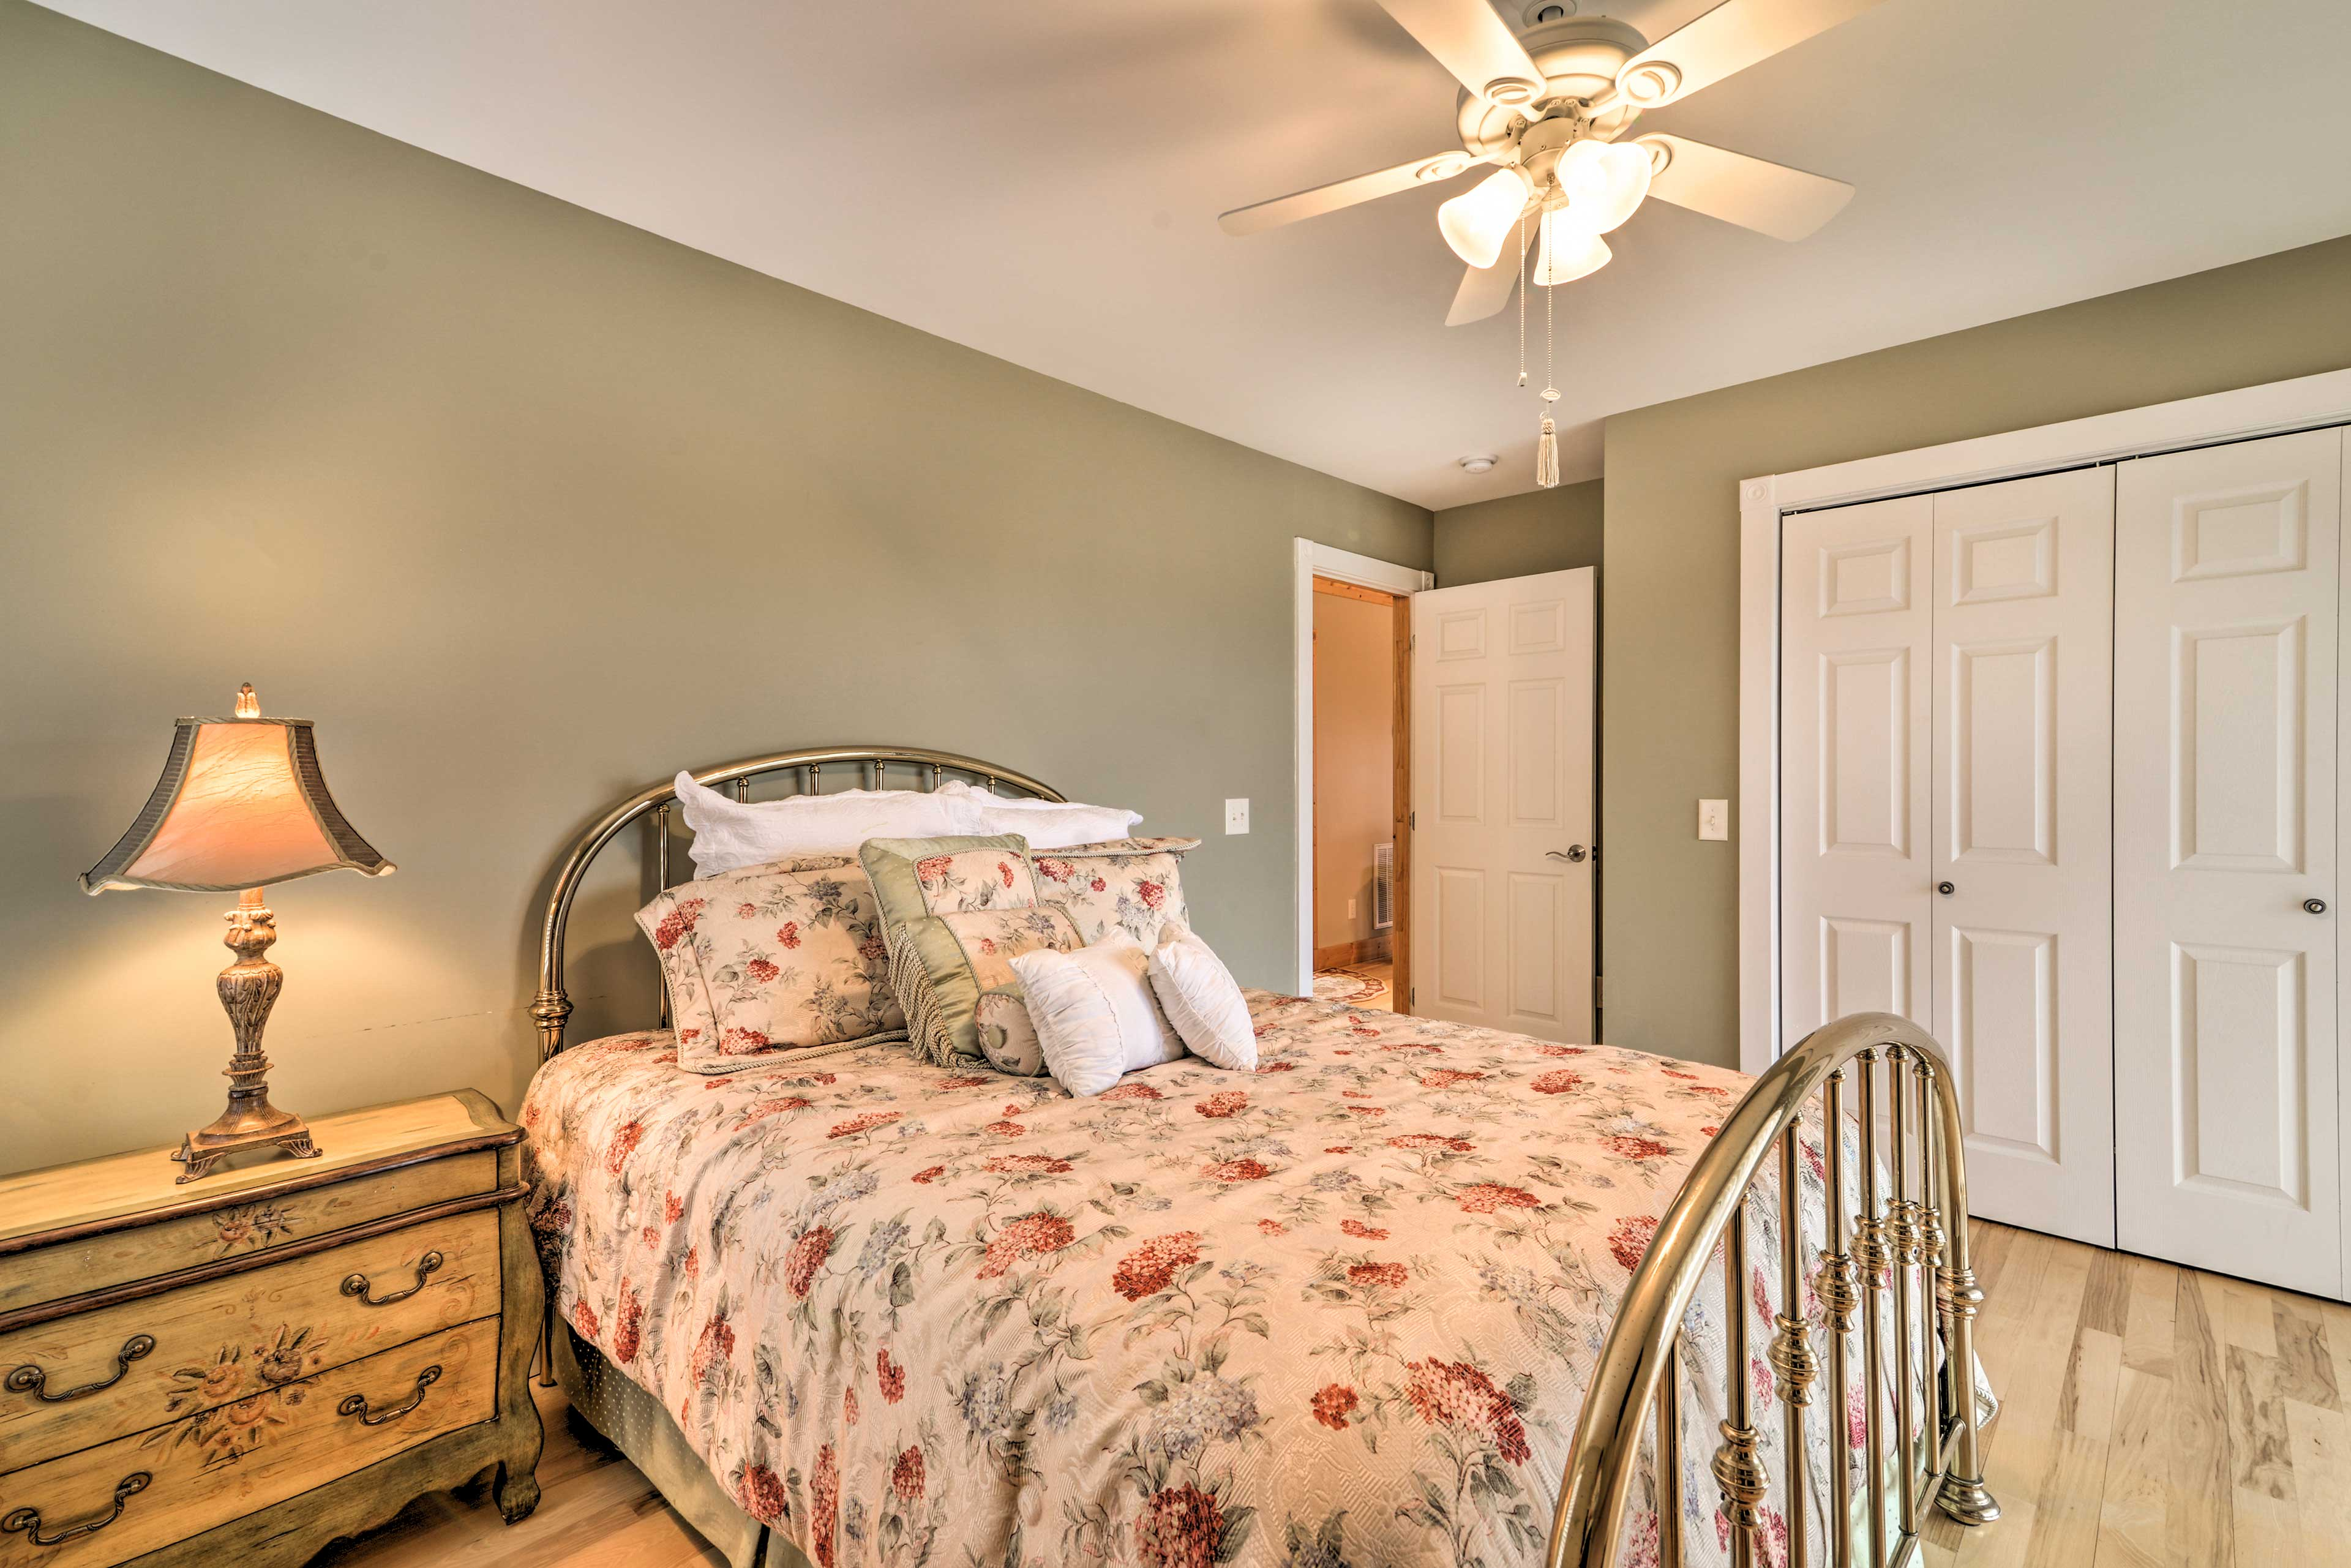 Three separate bedrooms provide ample space and privacy for your travel party.